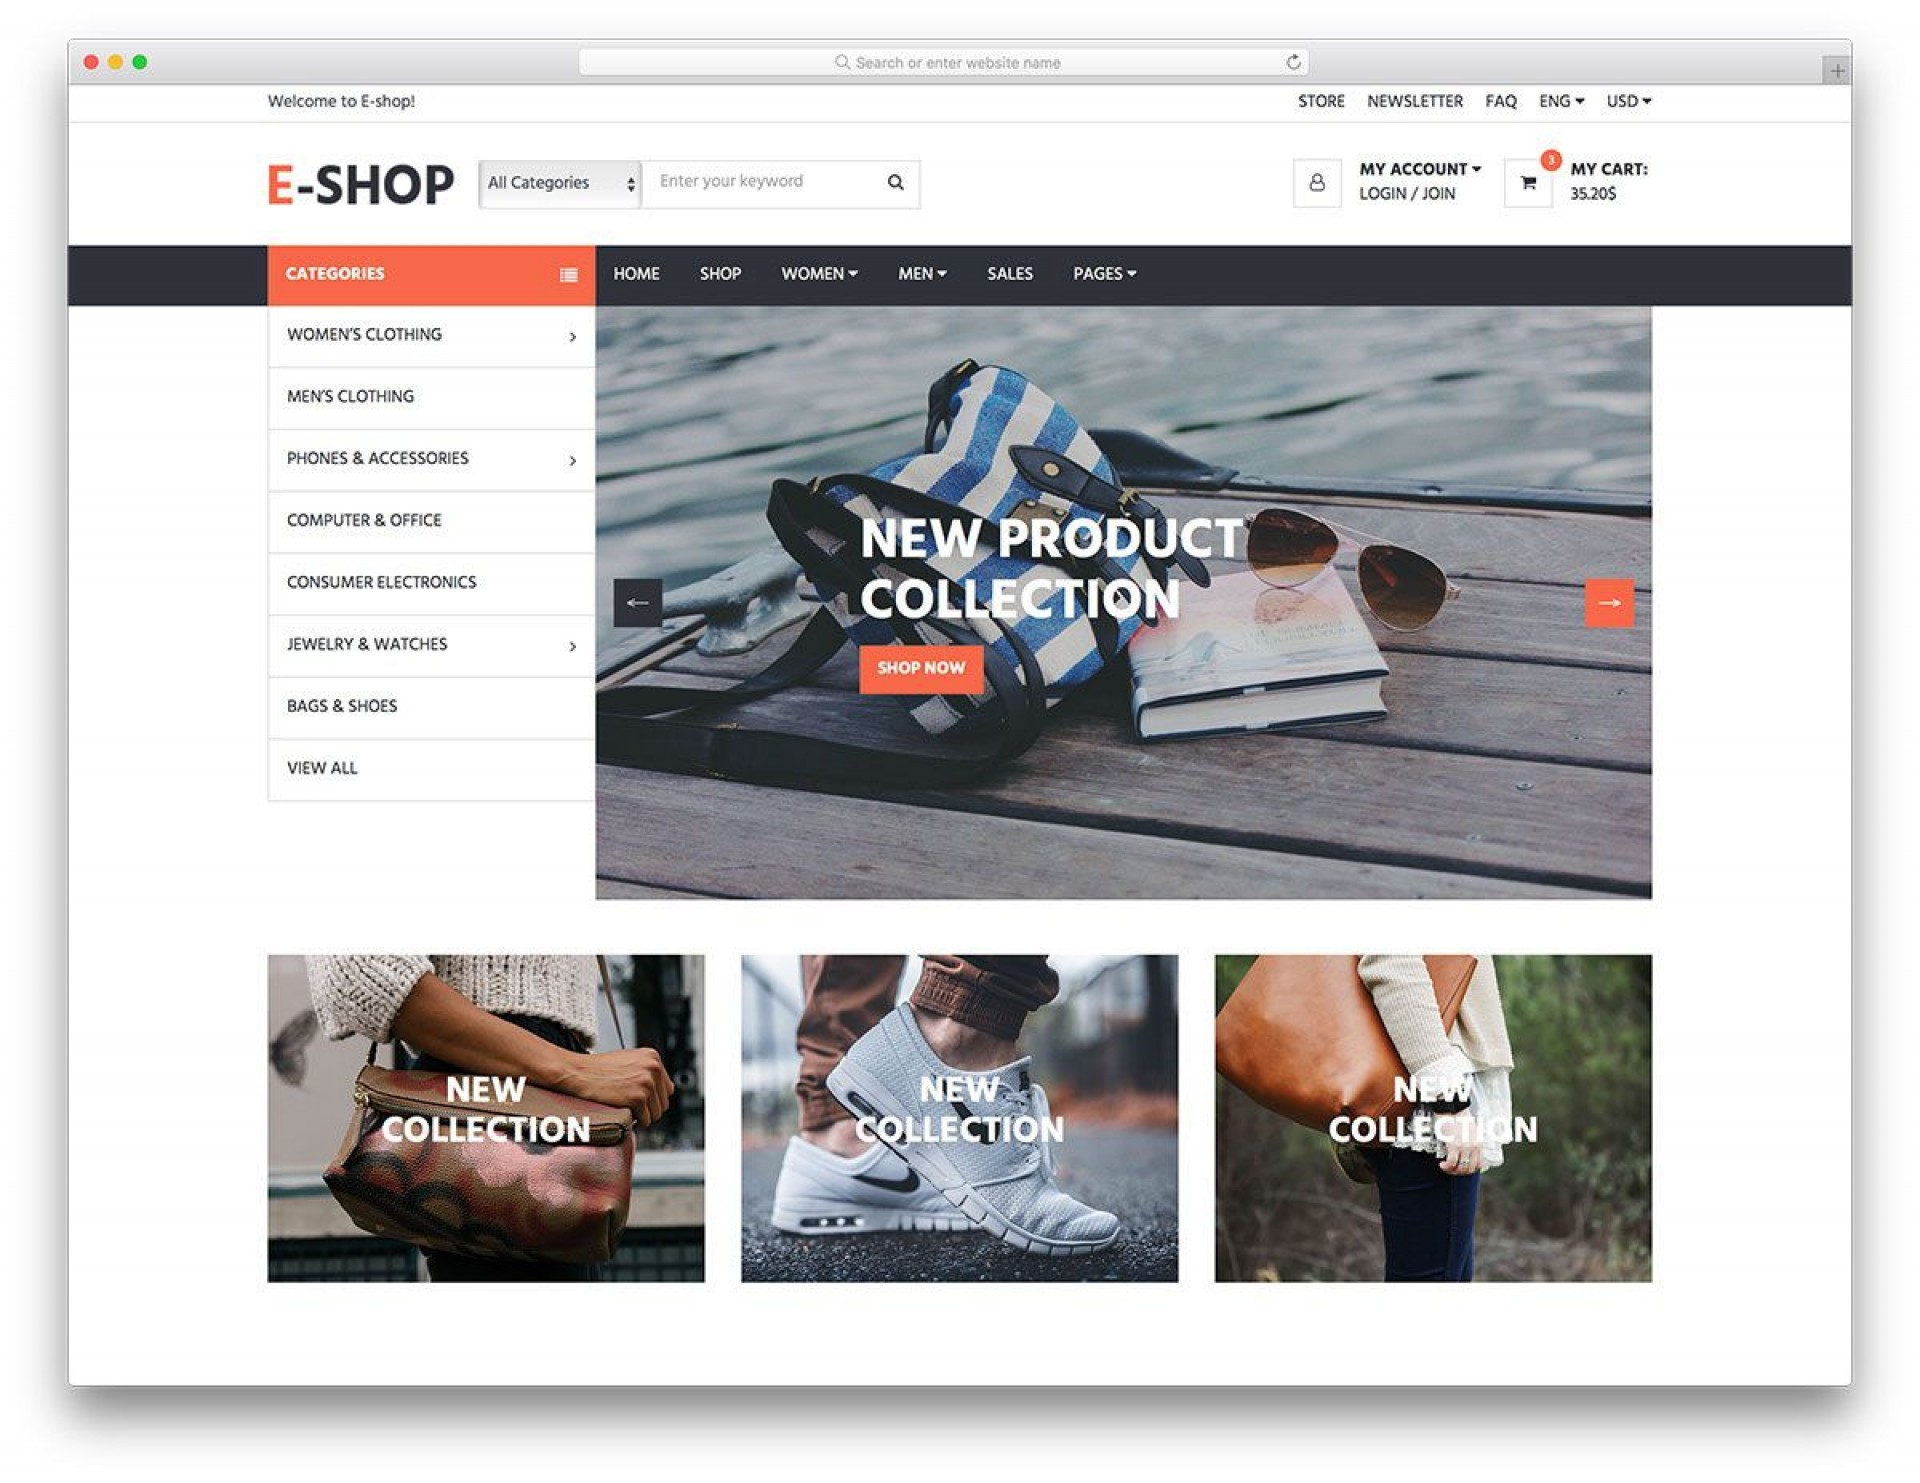 005 Unusual Ecommerce Website Template Html Free Download Sample  Bootstrap 4 Responsive With Cs Jquery1920